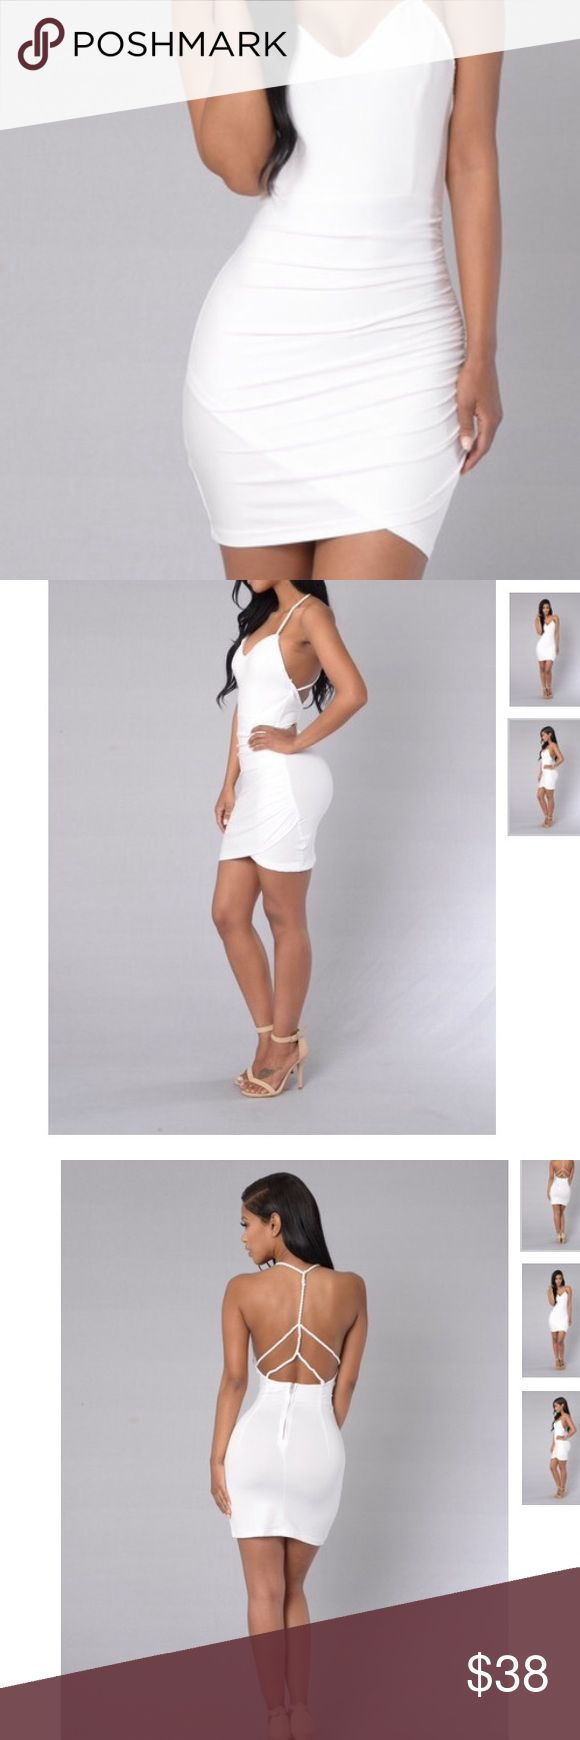 White club dress new. Summer strappy and sexy Cute stretchy summer white dress form fit and comfy sexy rope back. Tagging nasty gal for exposure Nasty Gal Dresses Mini